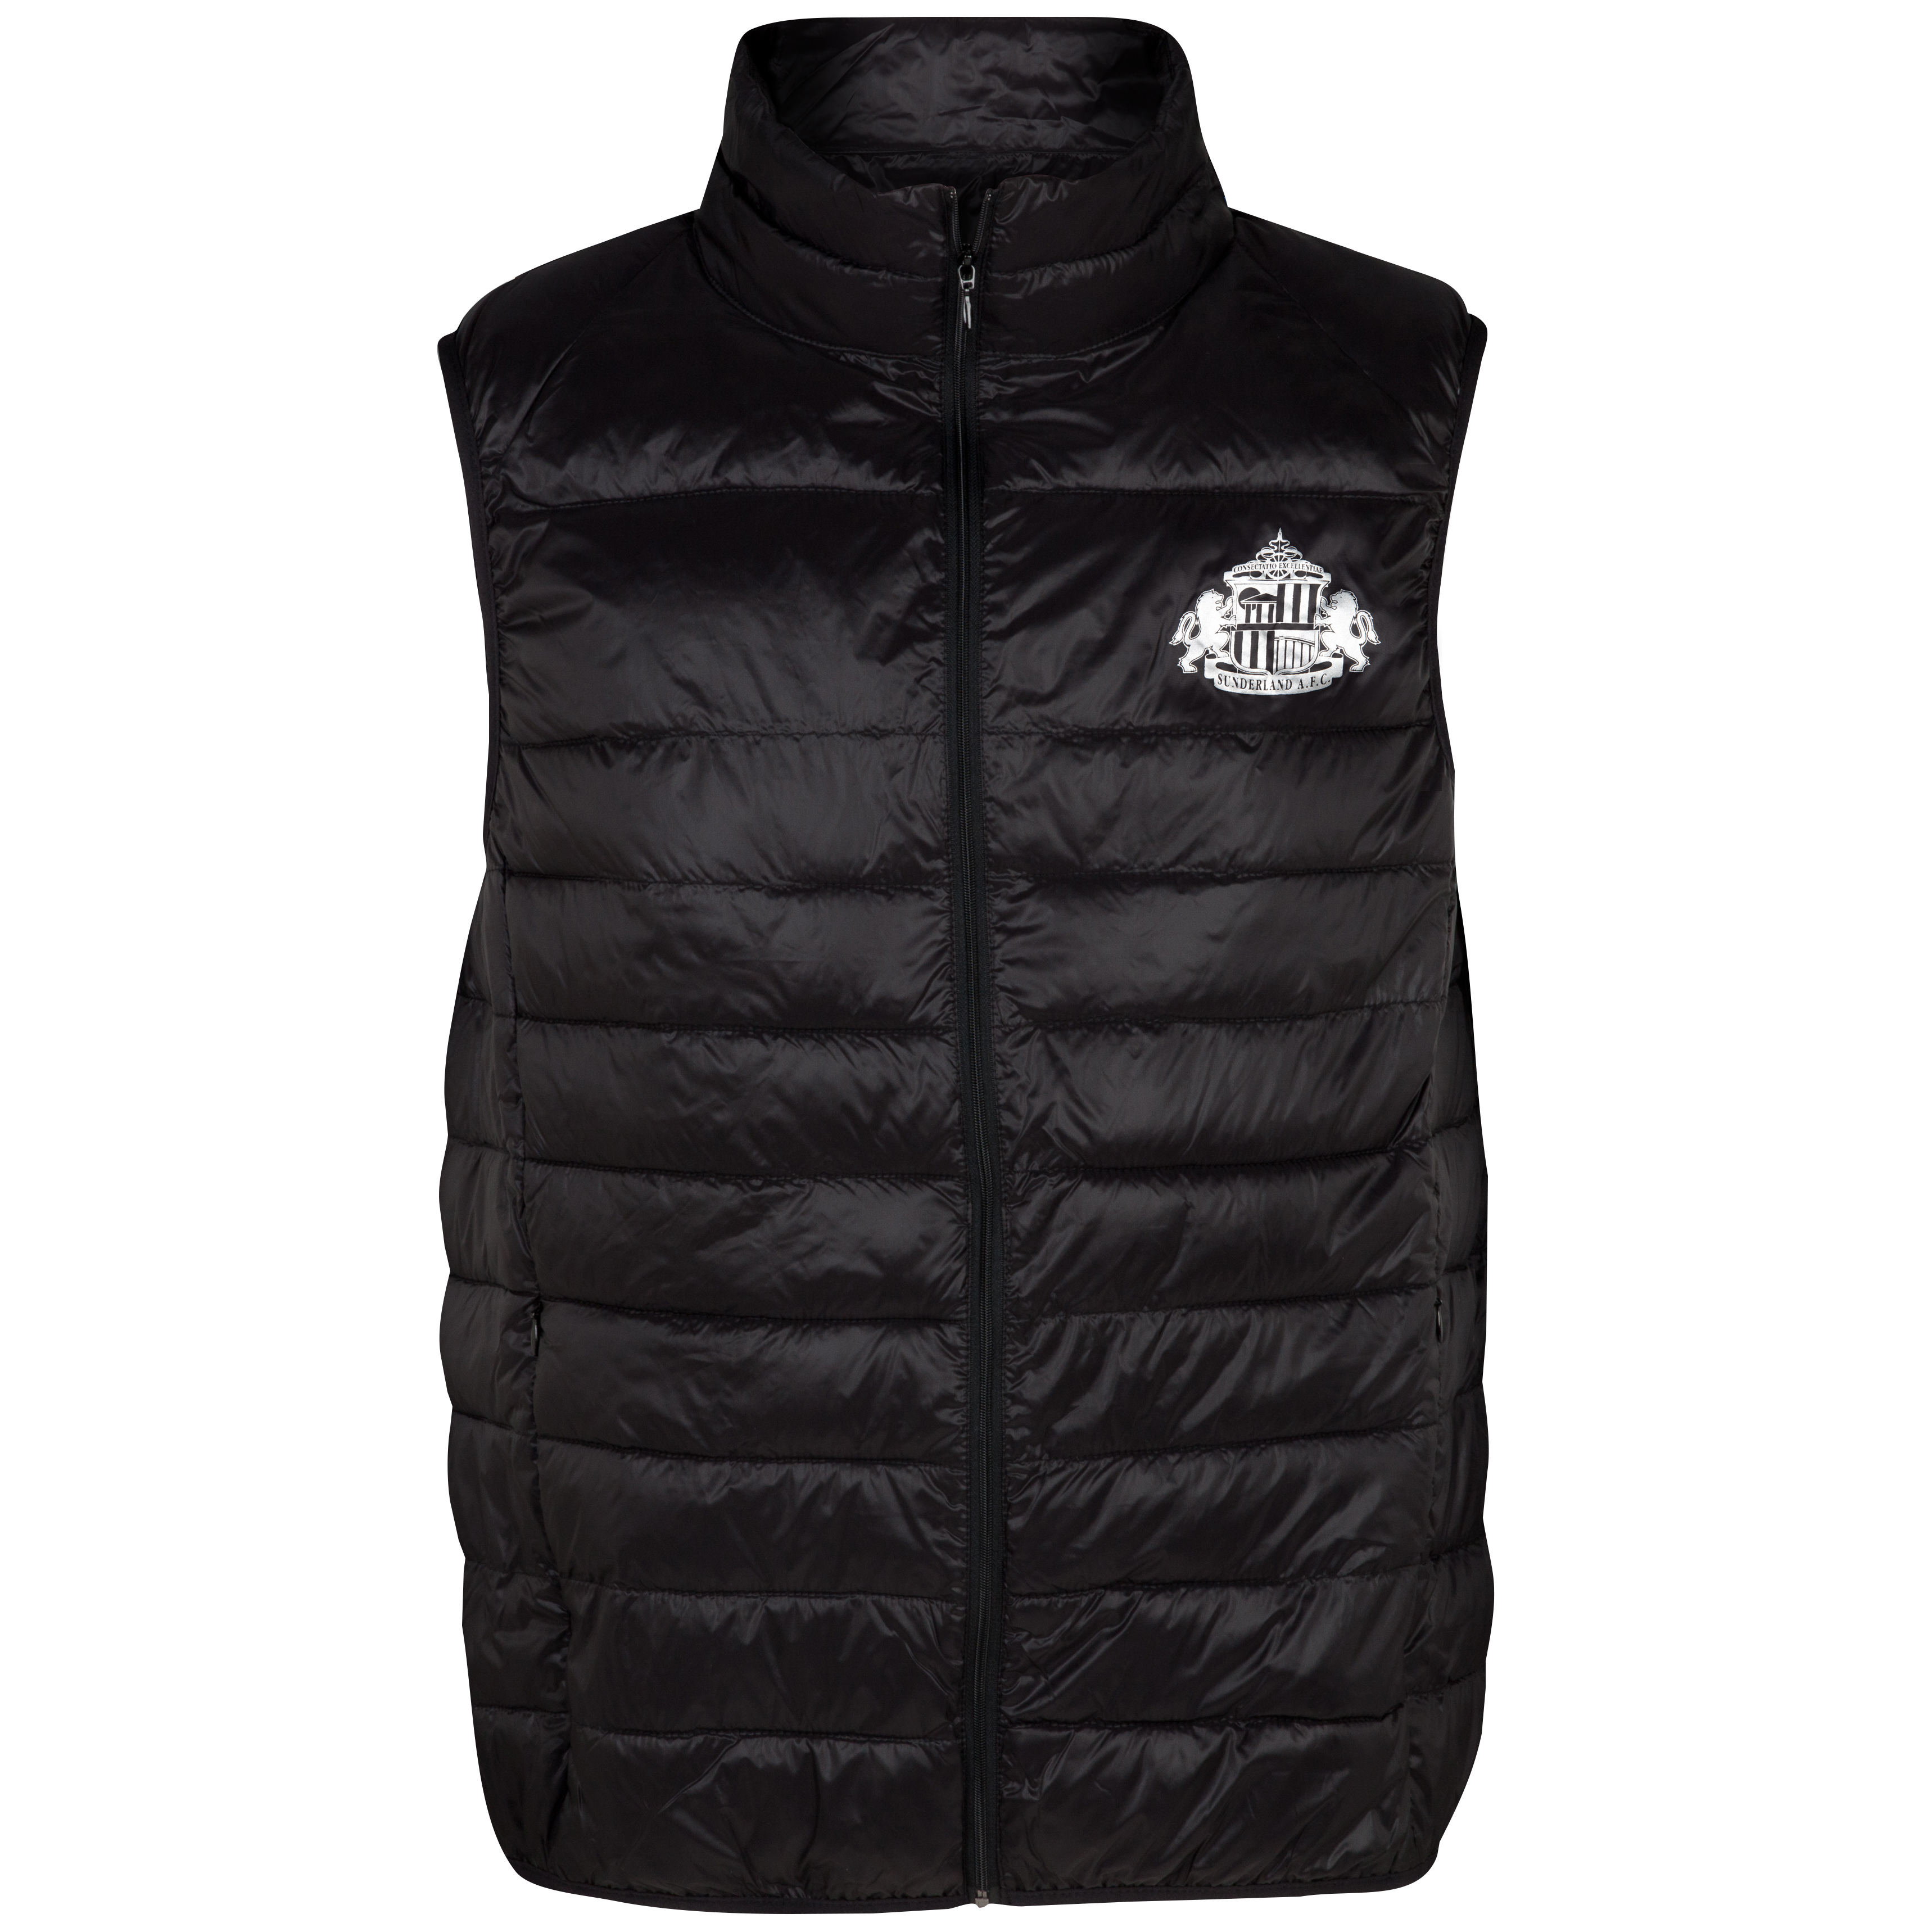 Sunderland Performance Berg Gilet - Black